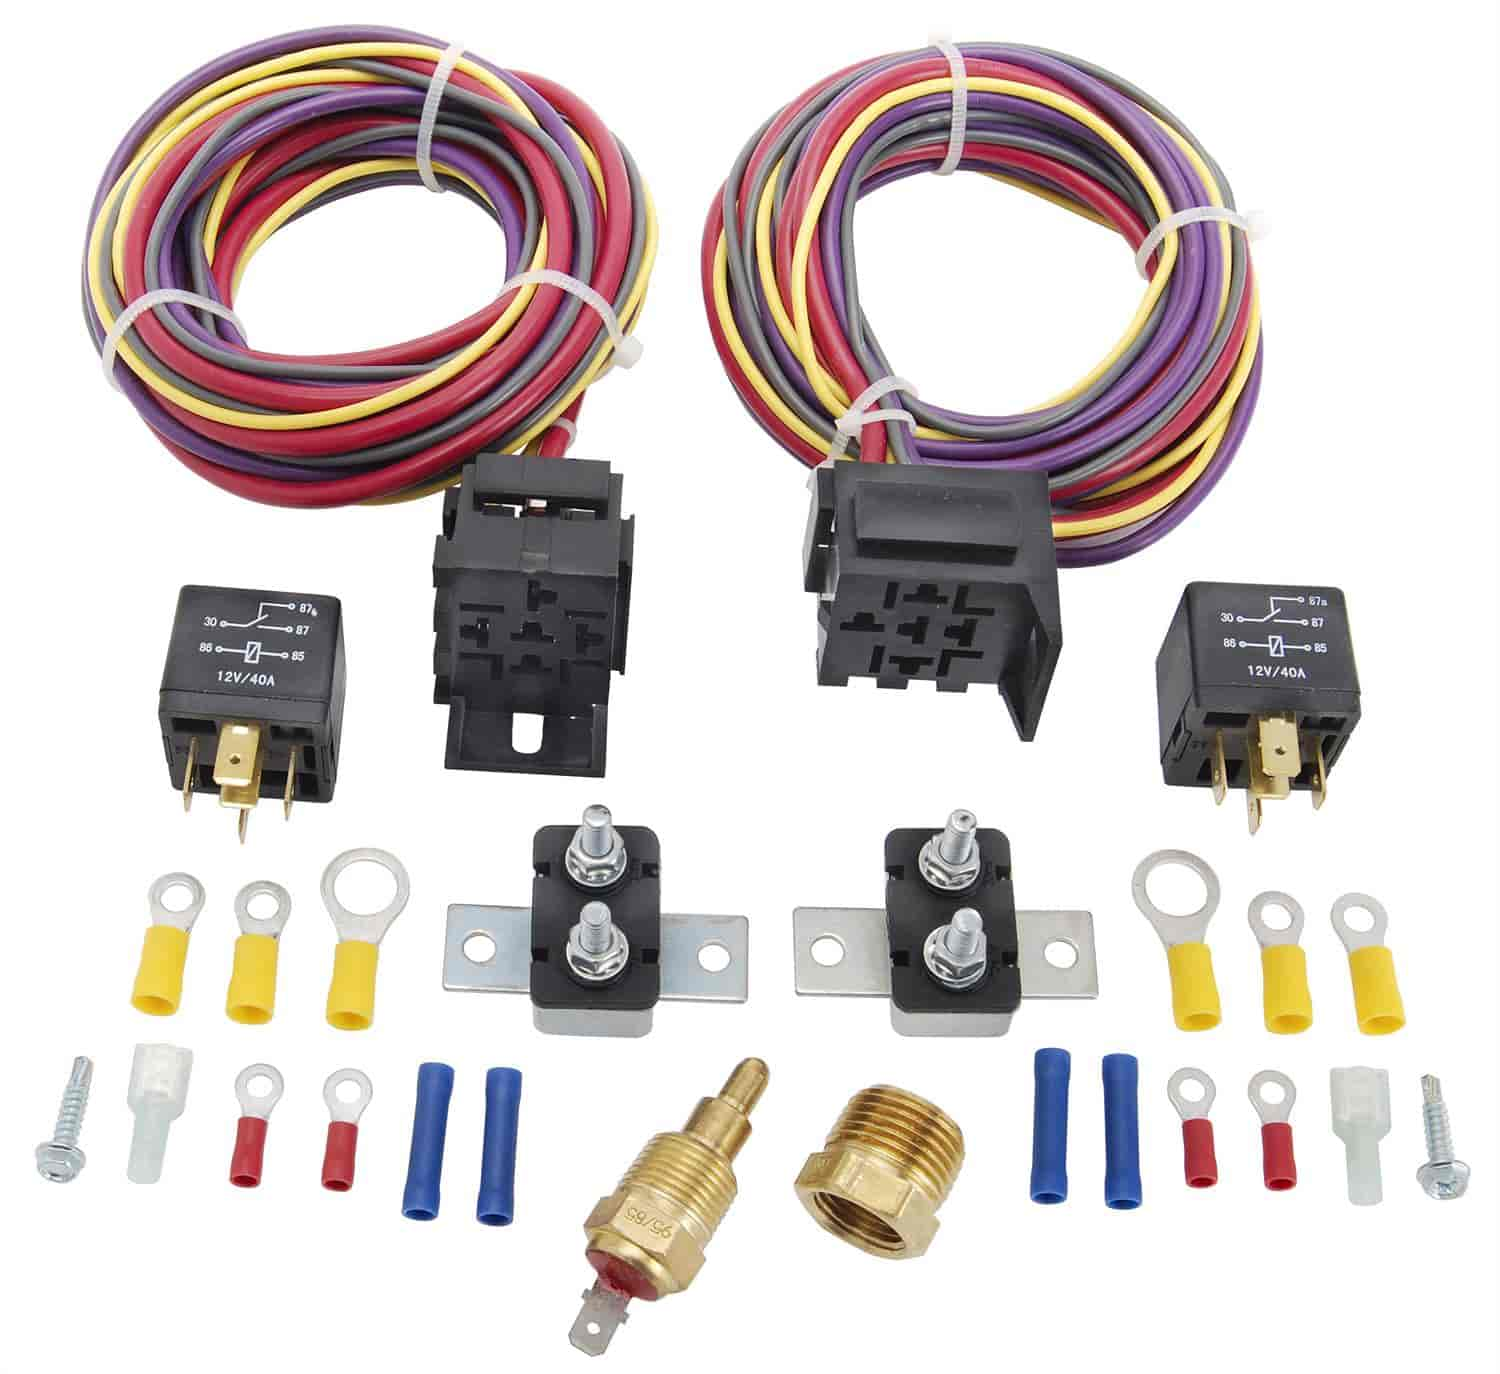 555 10571 jegs performance products 10571 dual fan wiring harness & relay VW Wiring Harness Kits at metegol.co